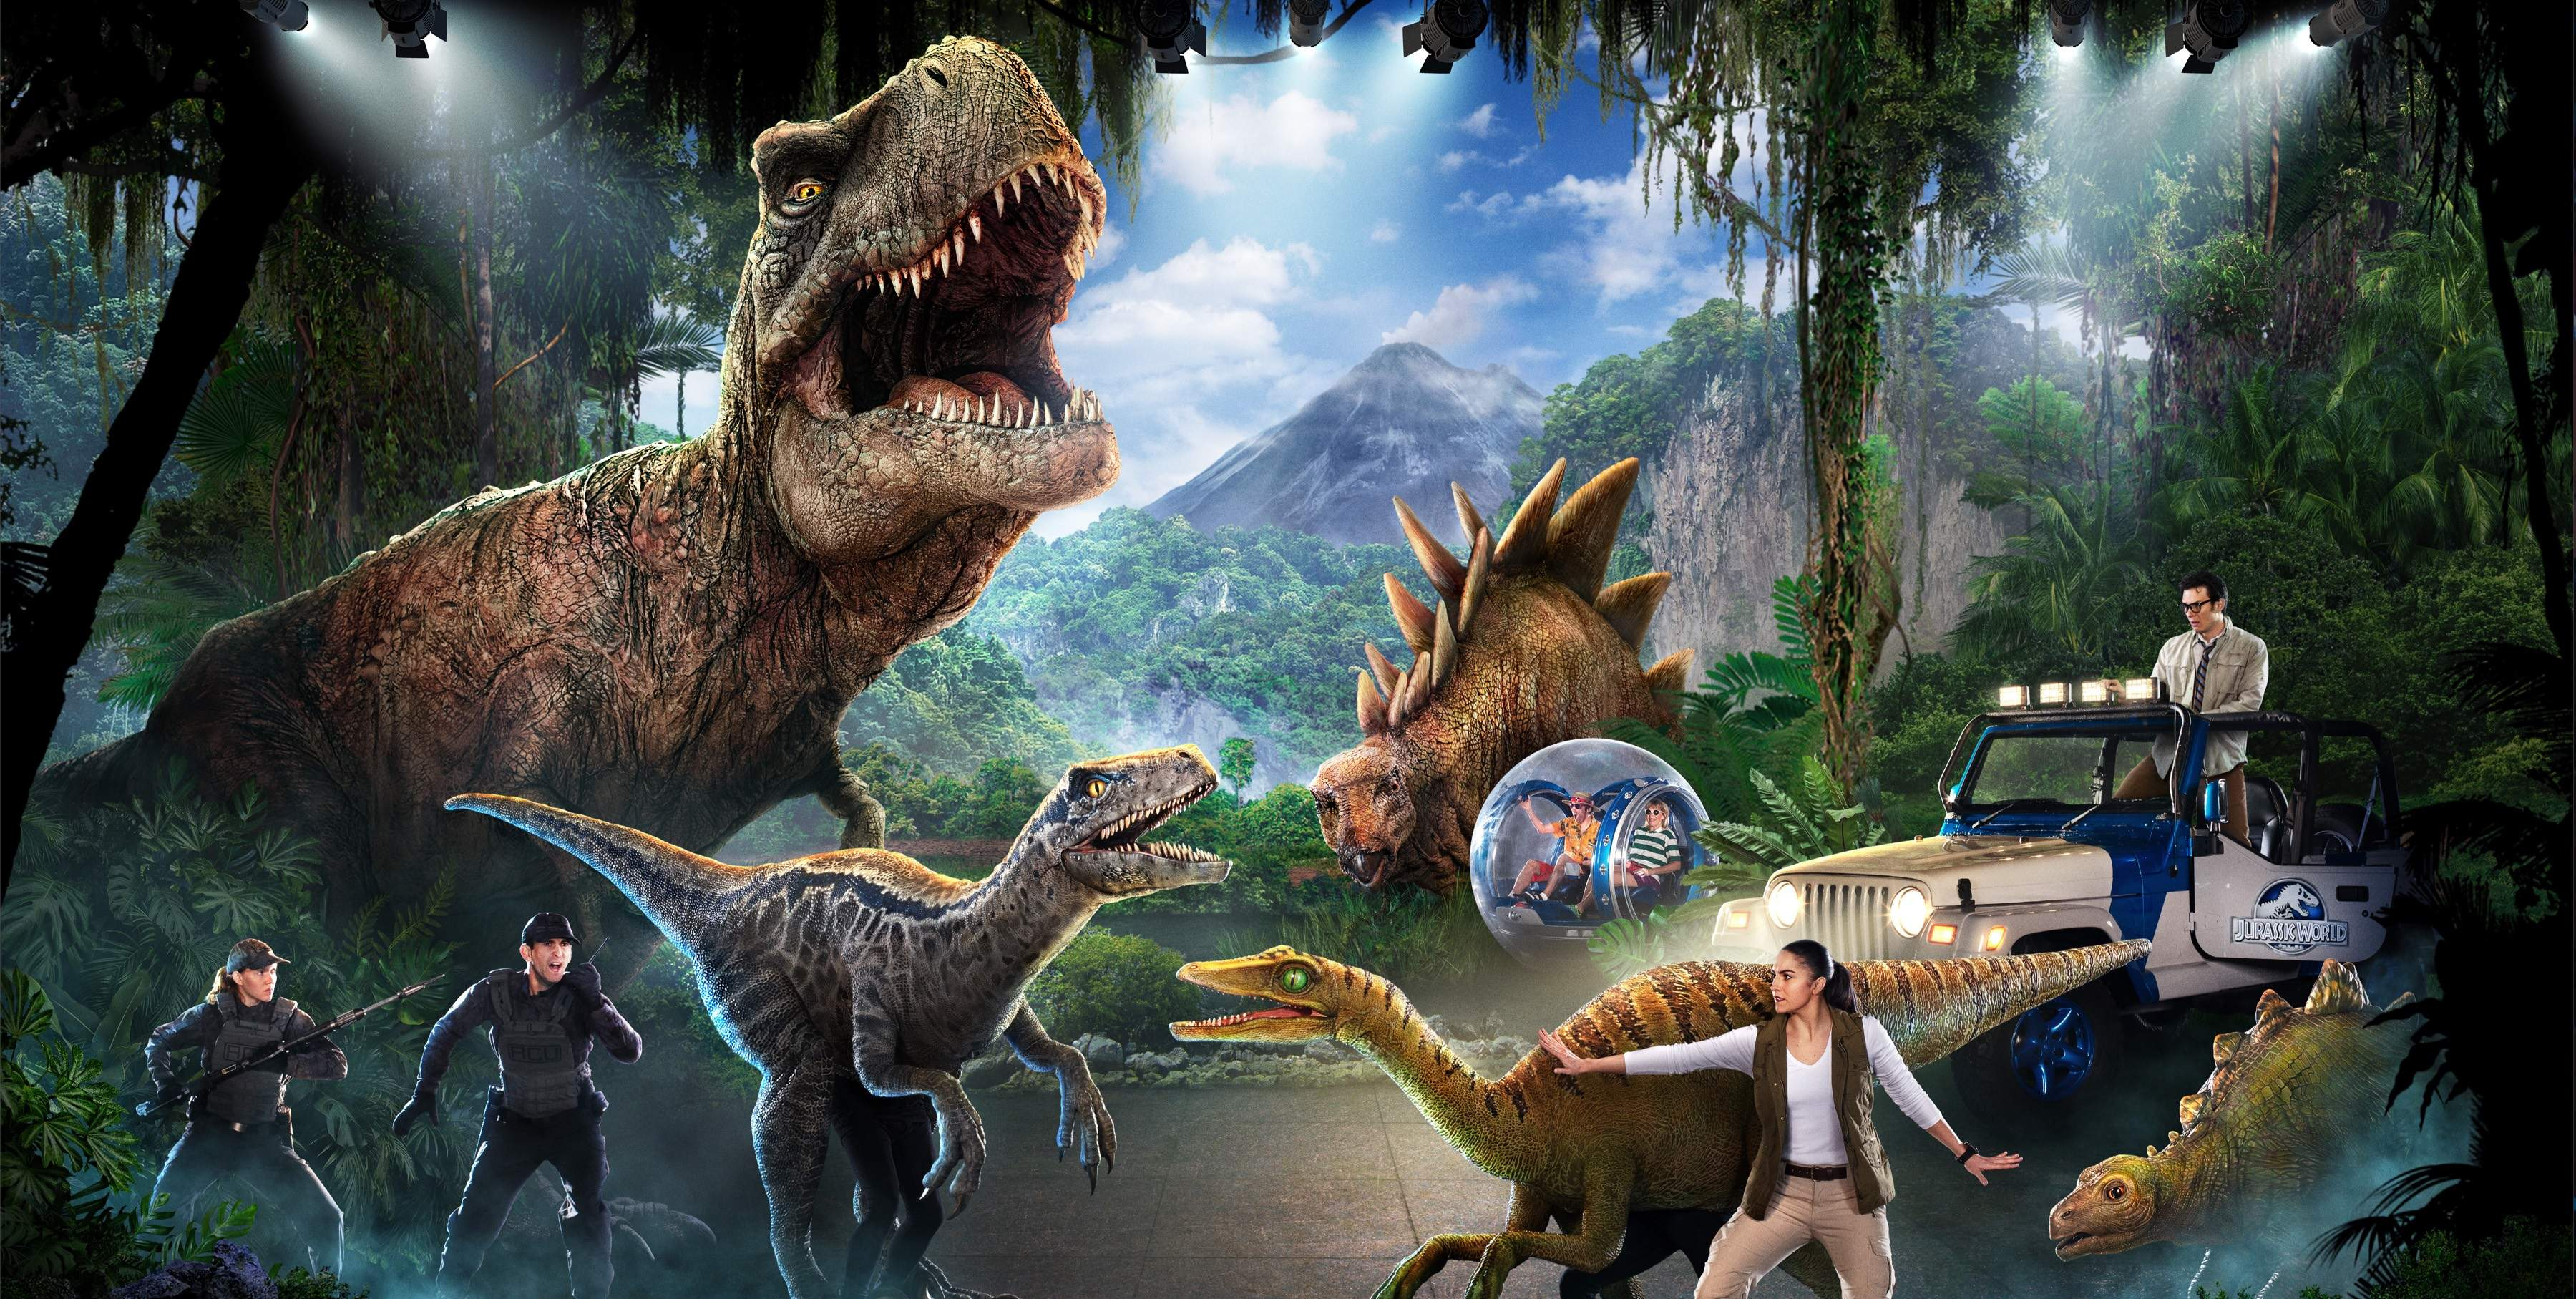 Jurassic World Live Tour!